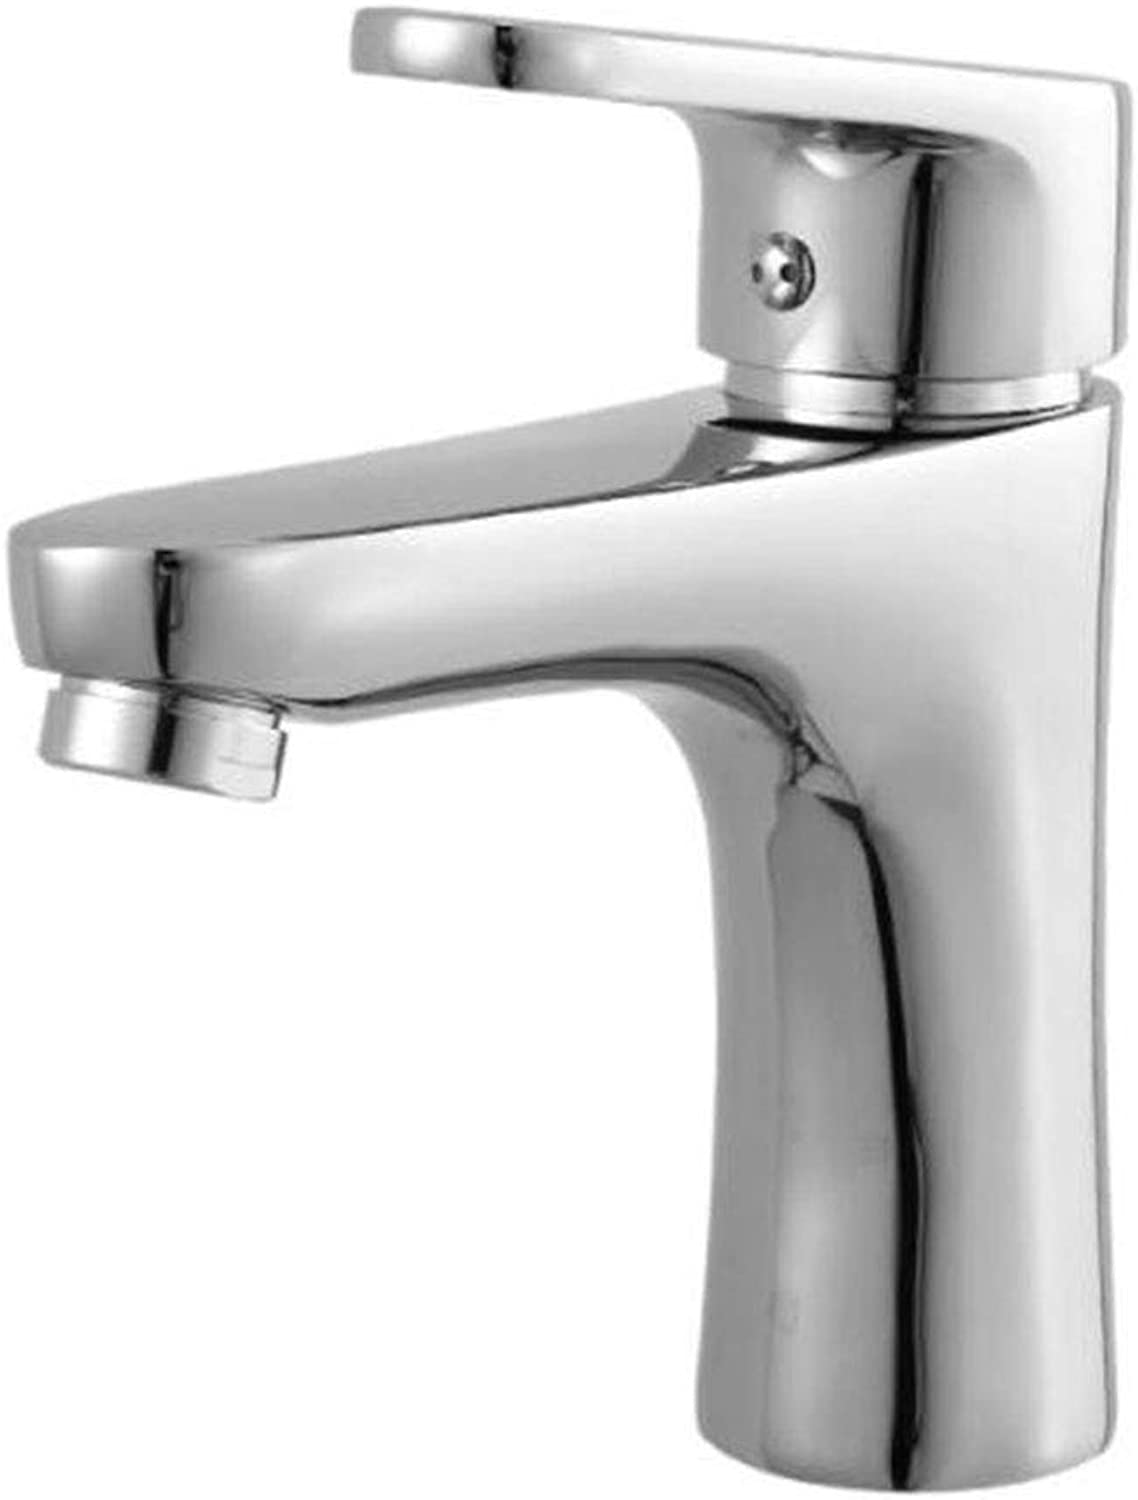 Bathroom Faucet, with Single Handle Sink Mixer Tap for Lavatory Bathroom Vanity Sink Faucet, Brass with Chrome Finish